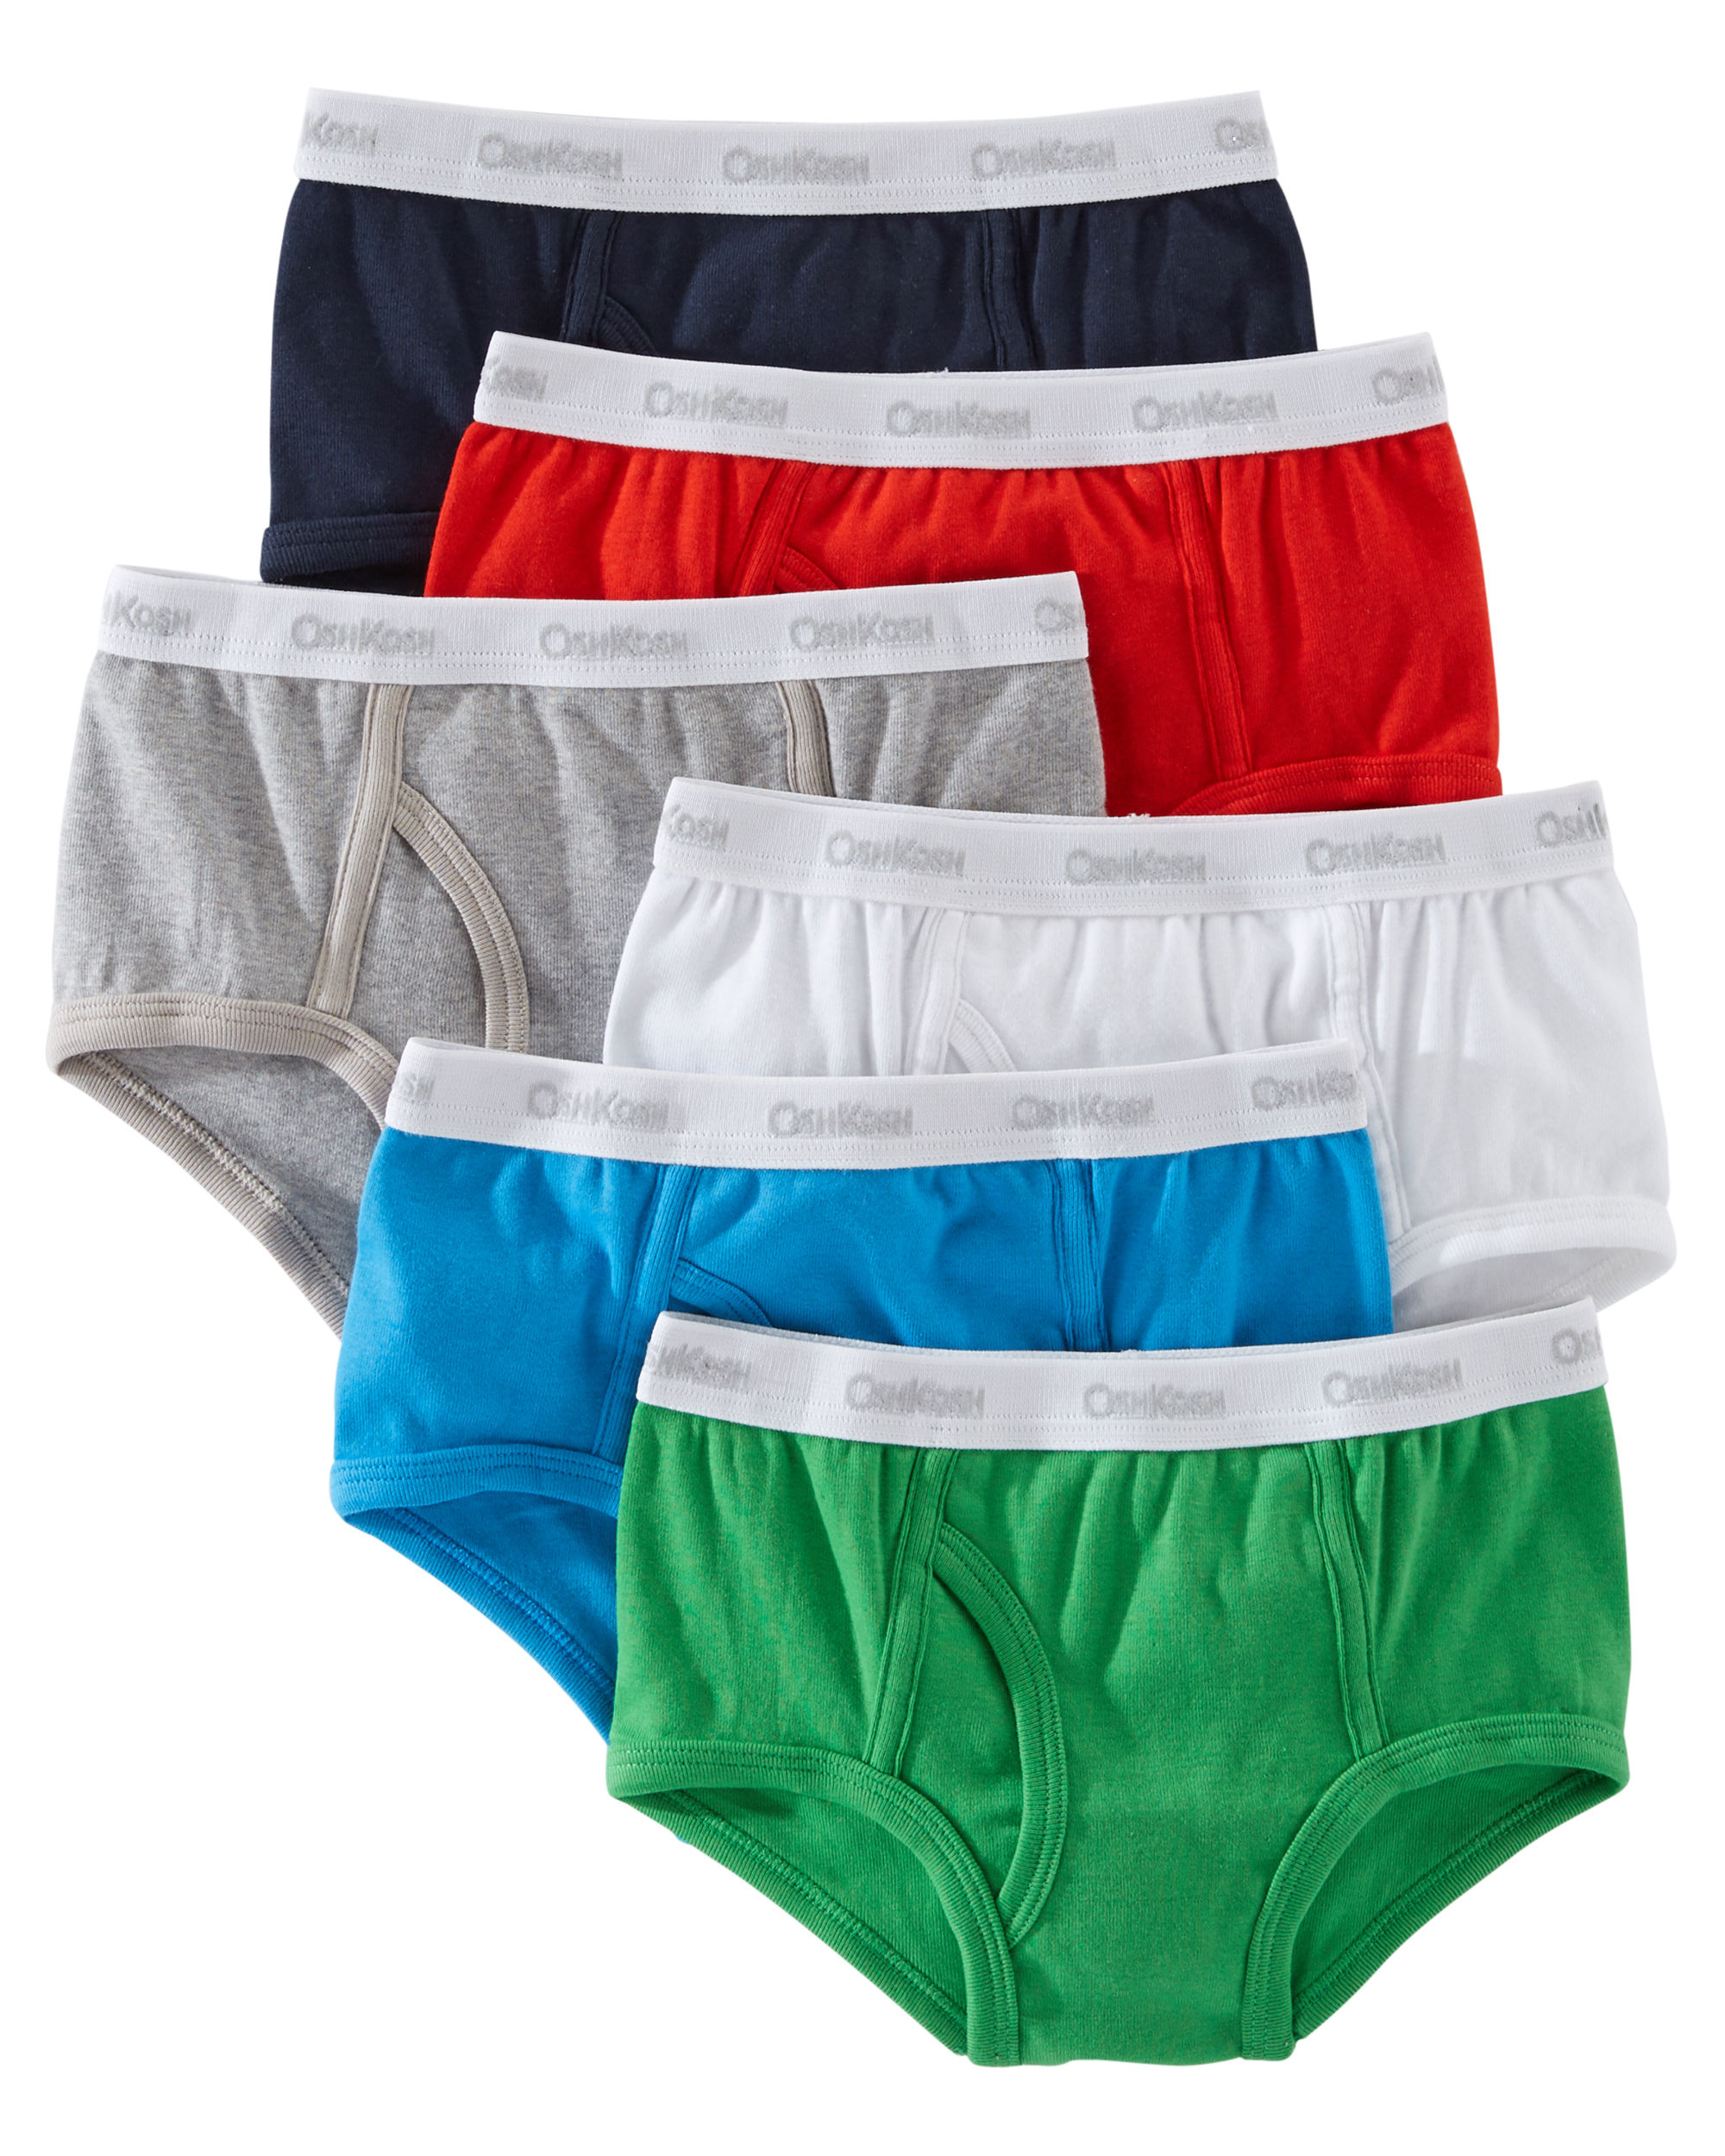 OshKosh B'gosh Big Boys' 6 Pack Cotton Briefs- Solids, 2 Kids